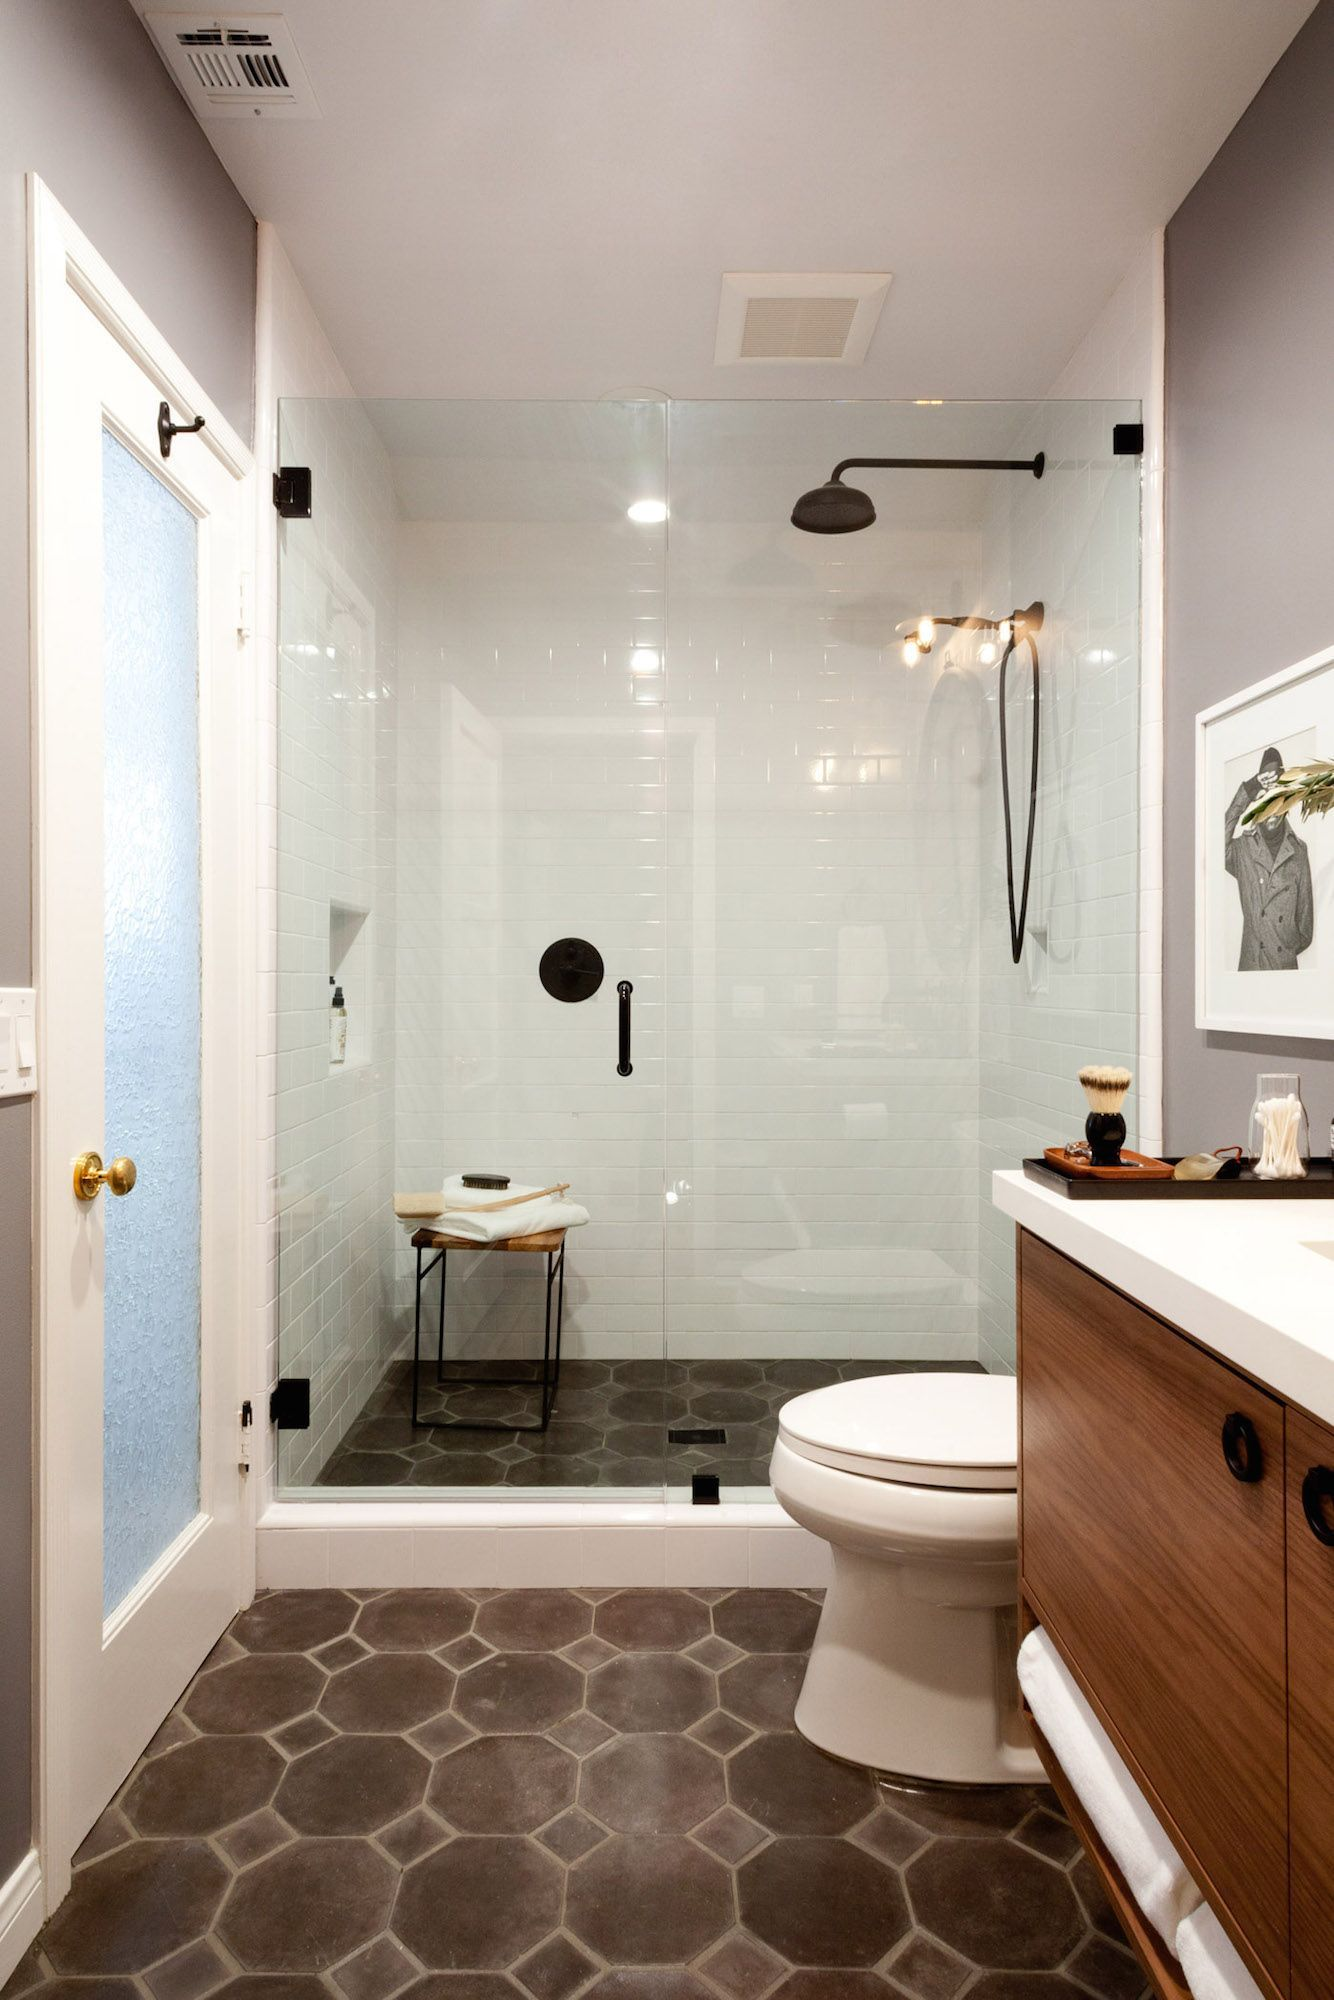 8 Bathroom Tile Trends To Keep A Close Eye On This Year | HUES of ...